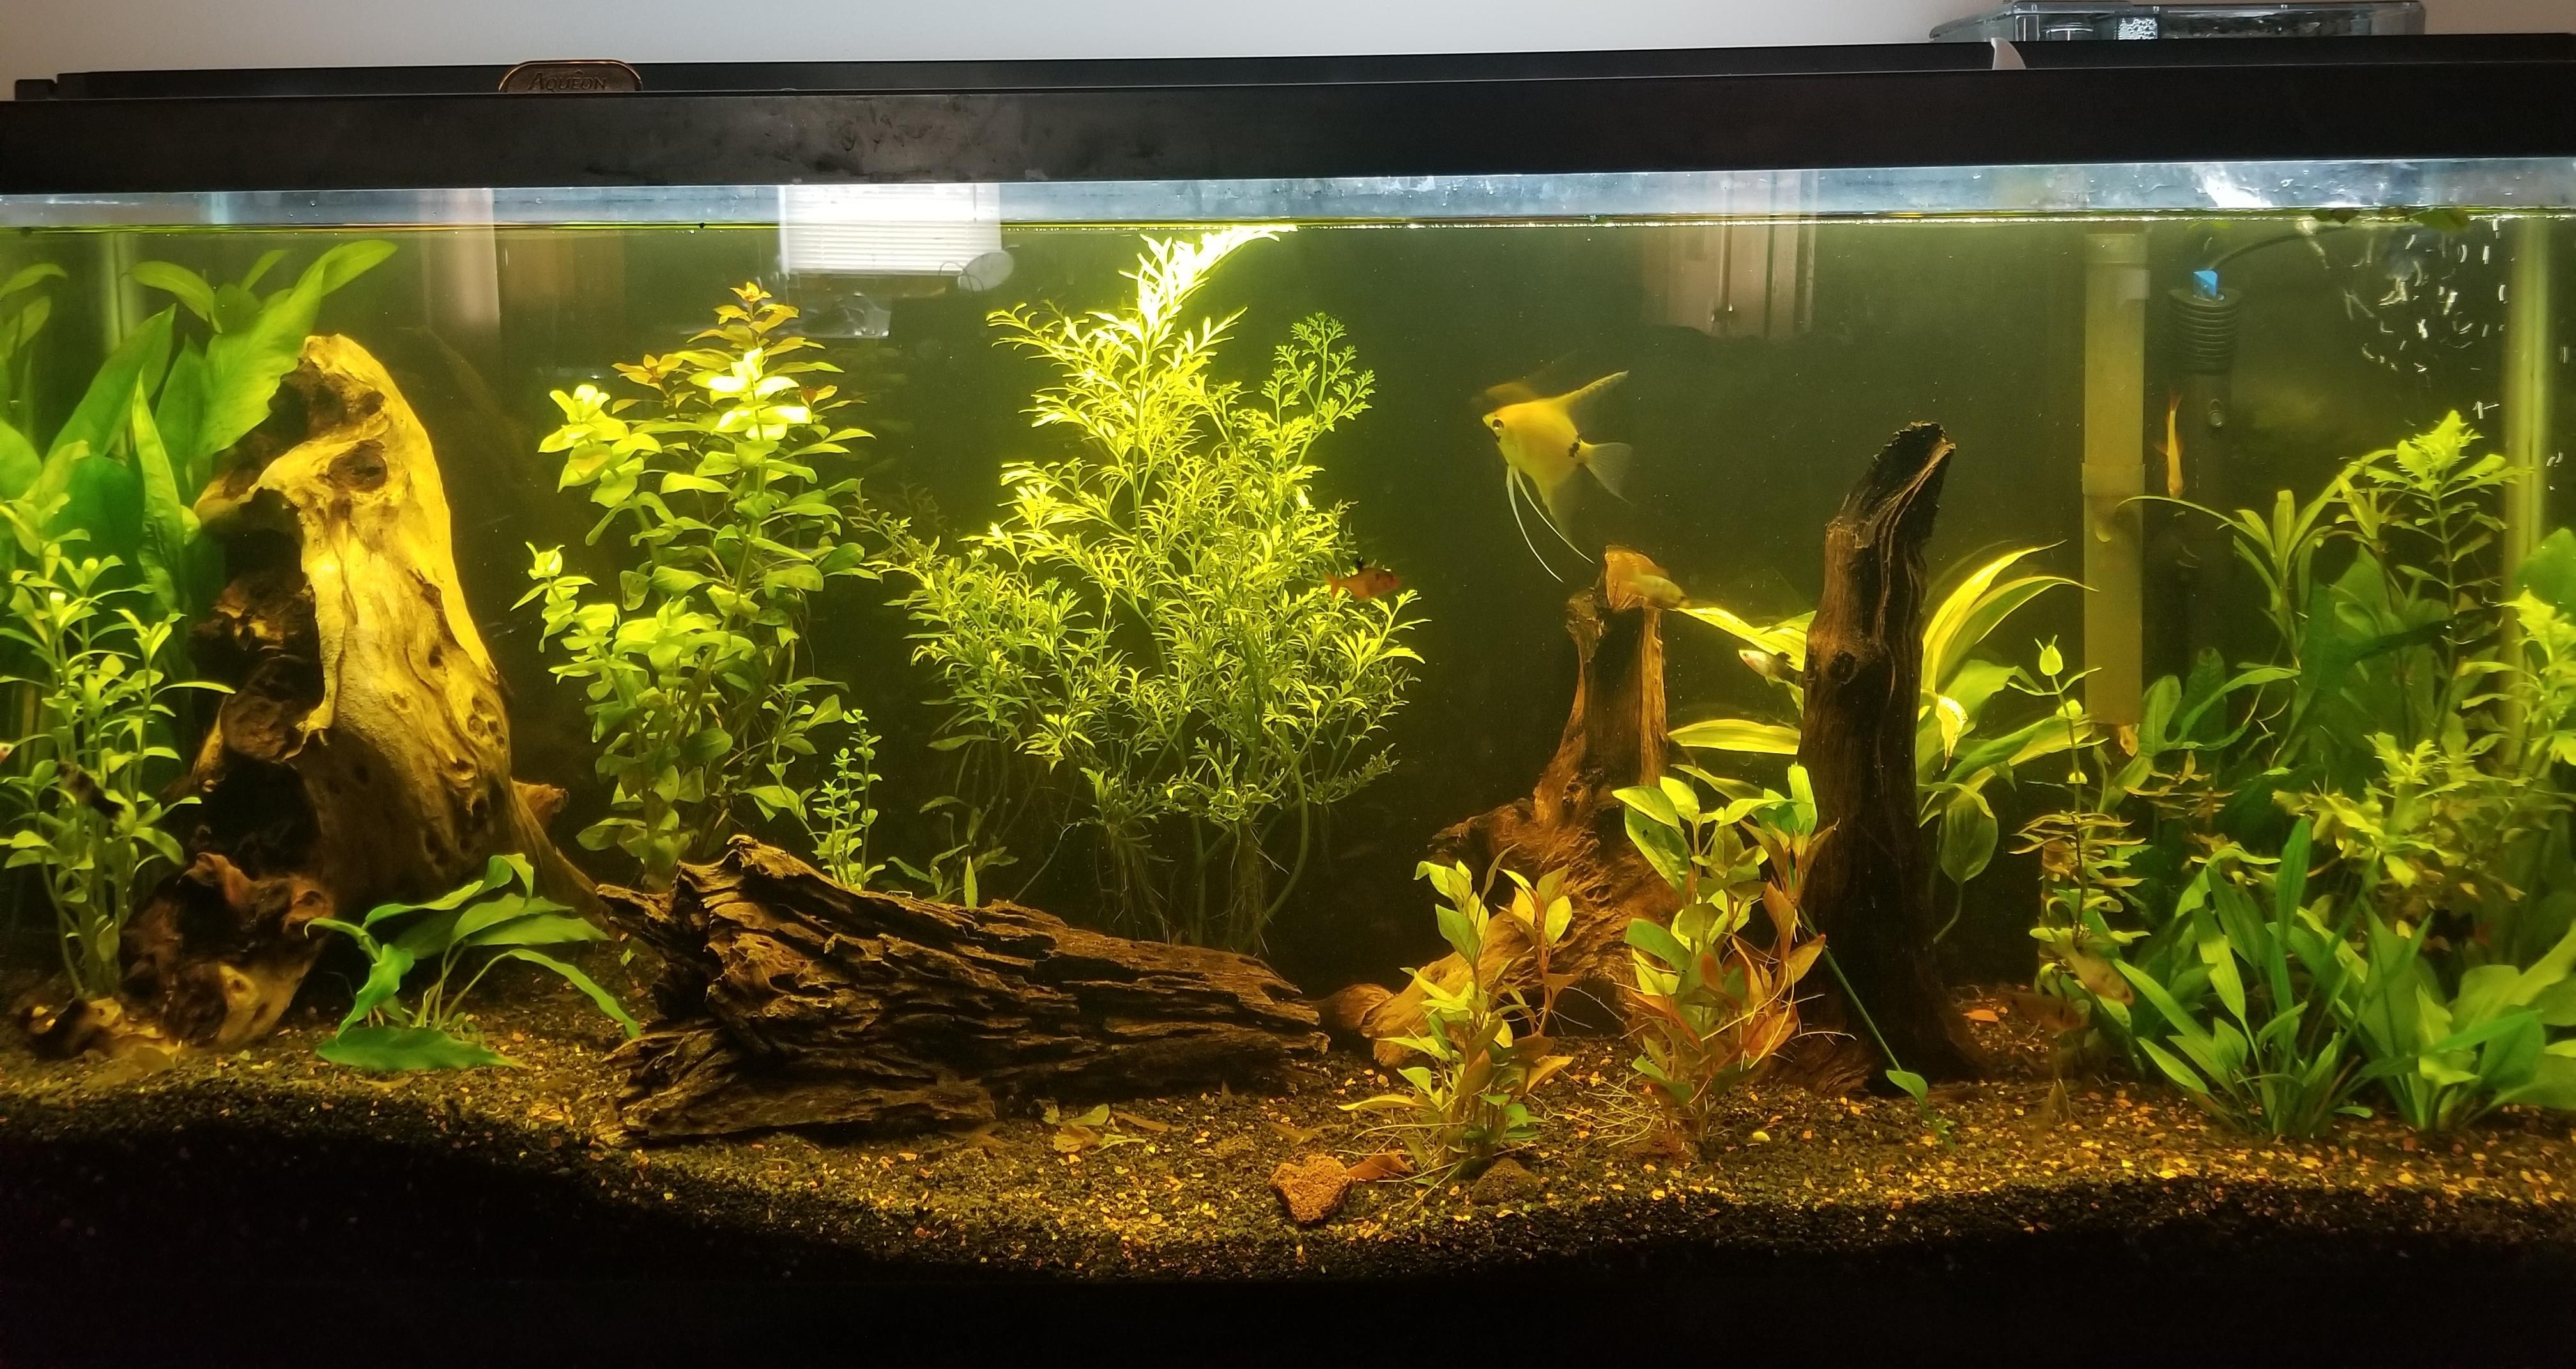 My g more pics of tank progression and fish in comments enjoy